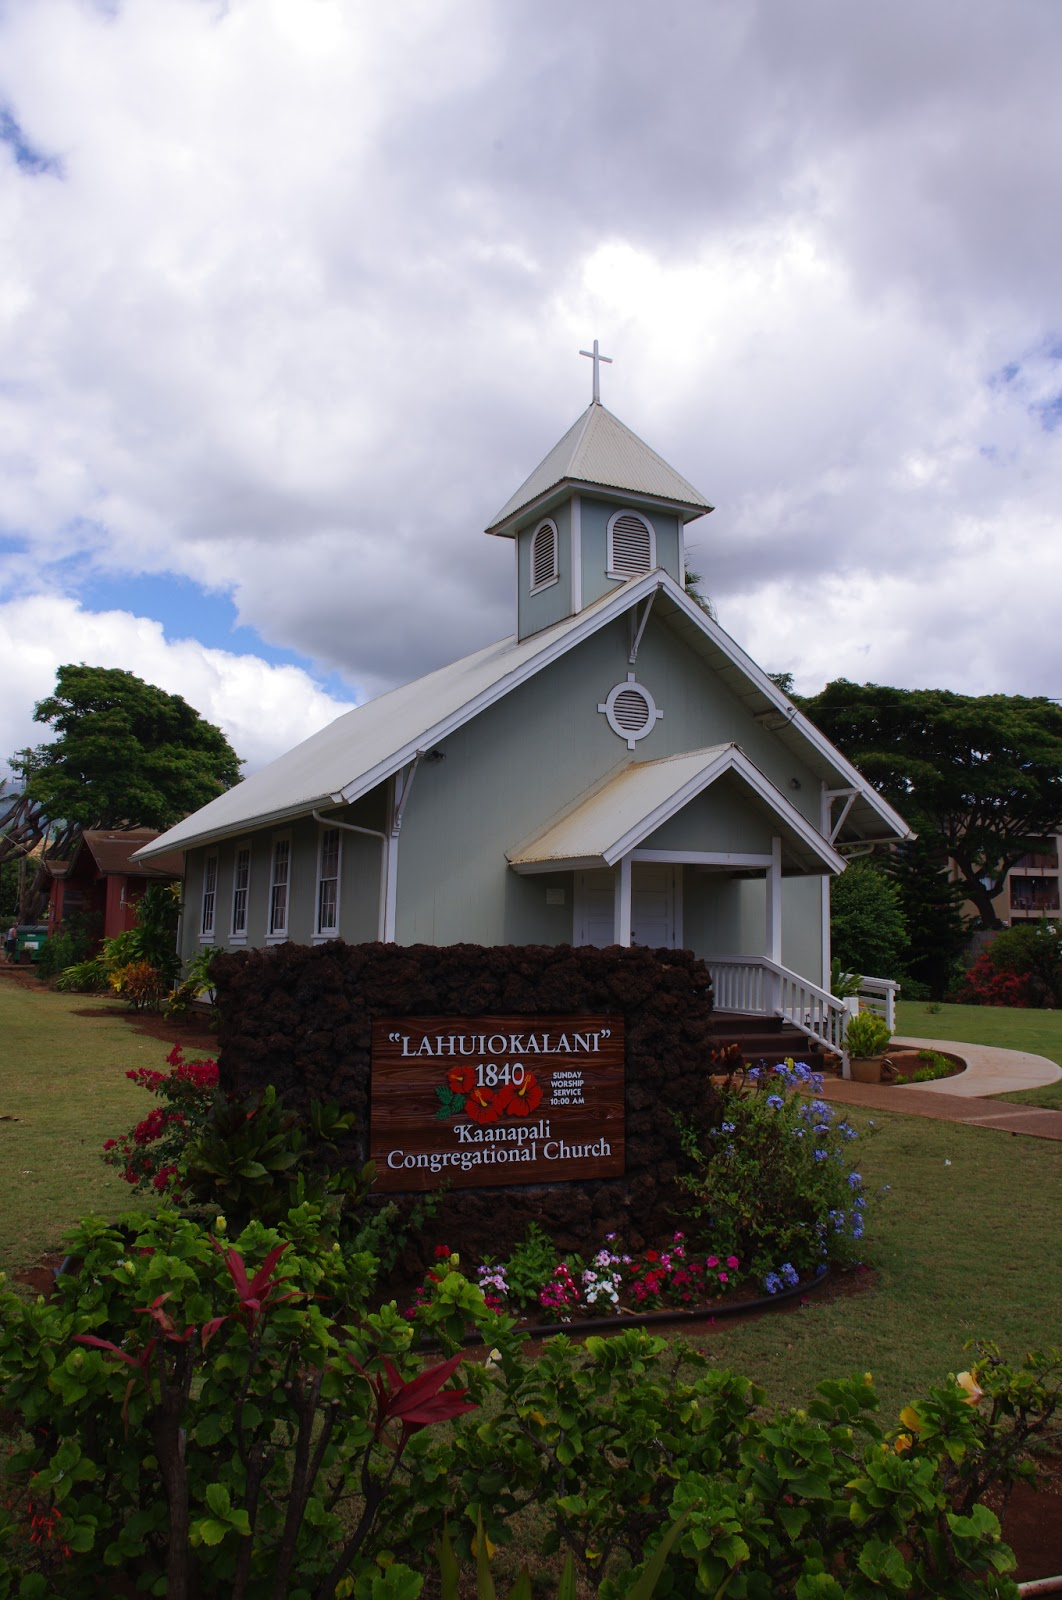 Lahuiokalani Kaanapali Congregational Church Maui Hawaii